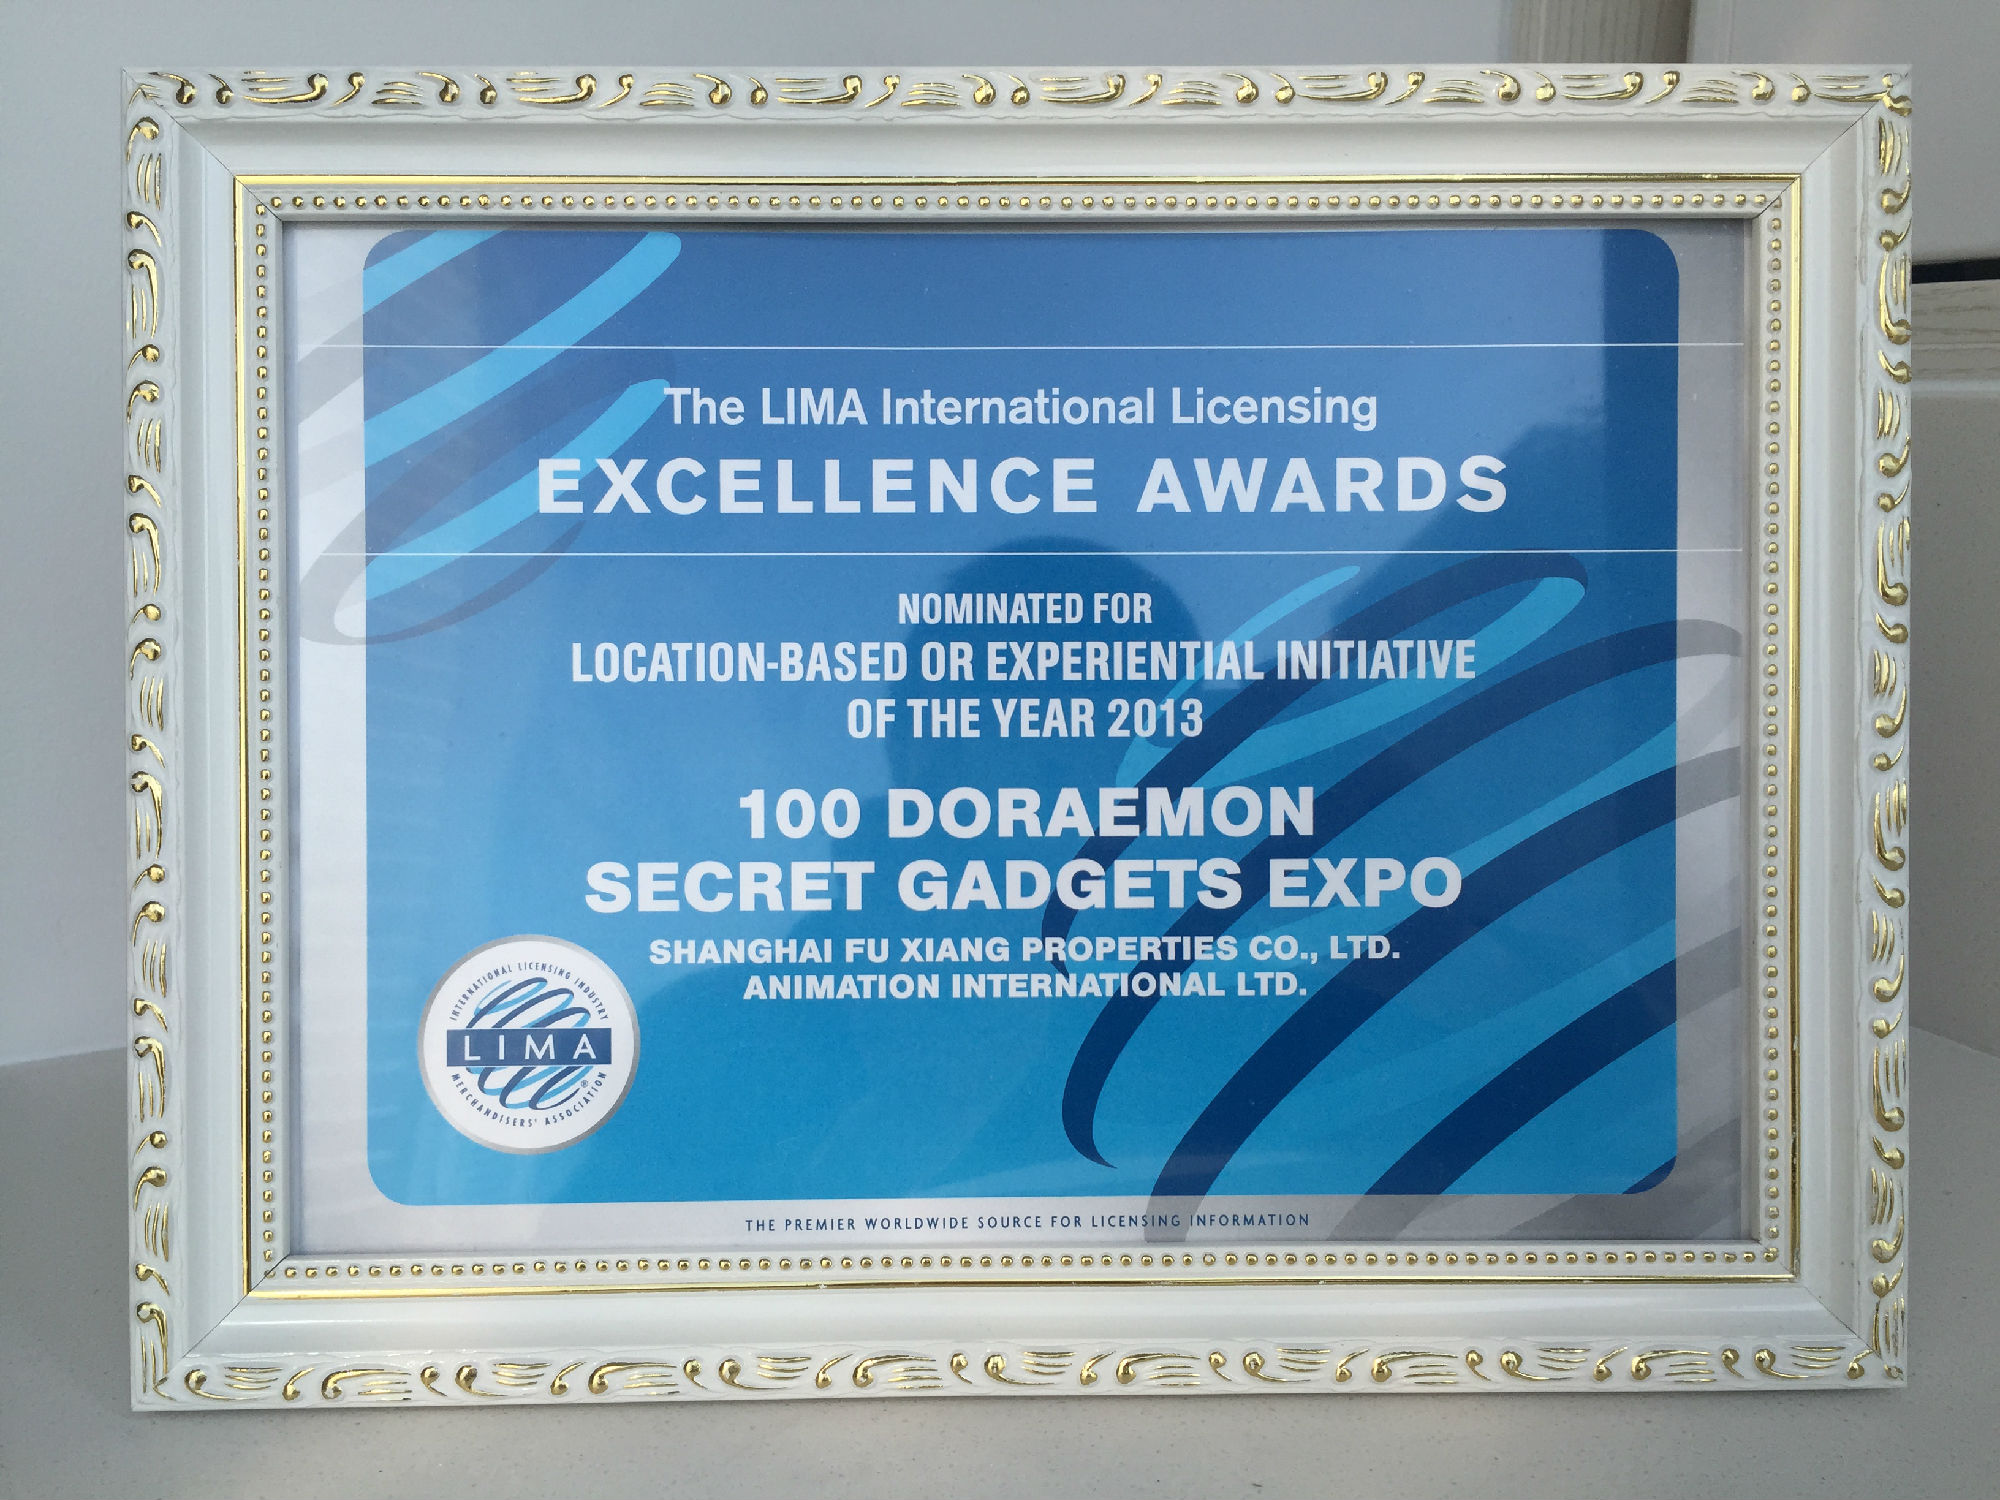 LOCATION-BASED EXPERIENTIAL INITIATIVE OF THE YEAR 2013